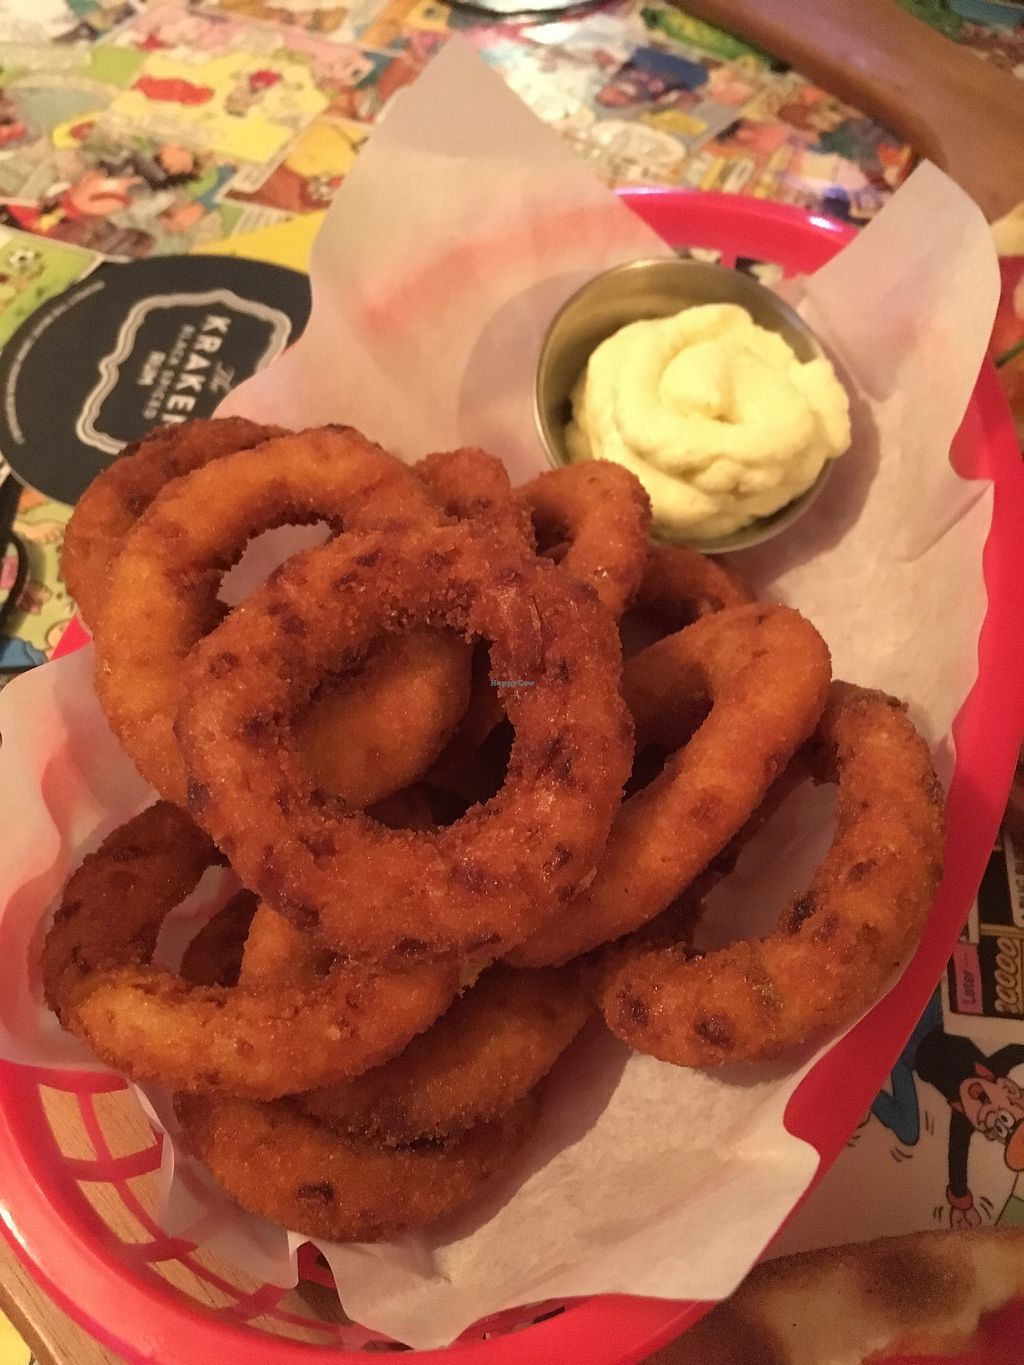 "Photo of Old Town House  by <a href=""/members/profile/vg-melling-92"">vg-melling-92</a> <br/>Crispy onion rings , vegan mayo  <br/> February 12, 2018  - <a href='/contact/abuse/image/95784/358546'>Report</a>"